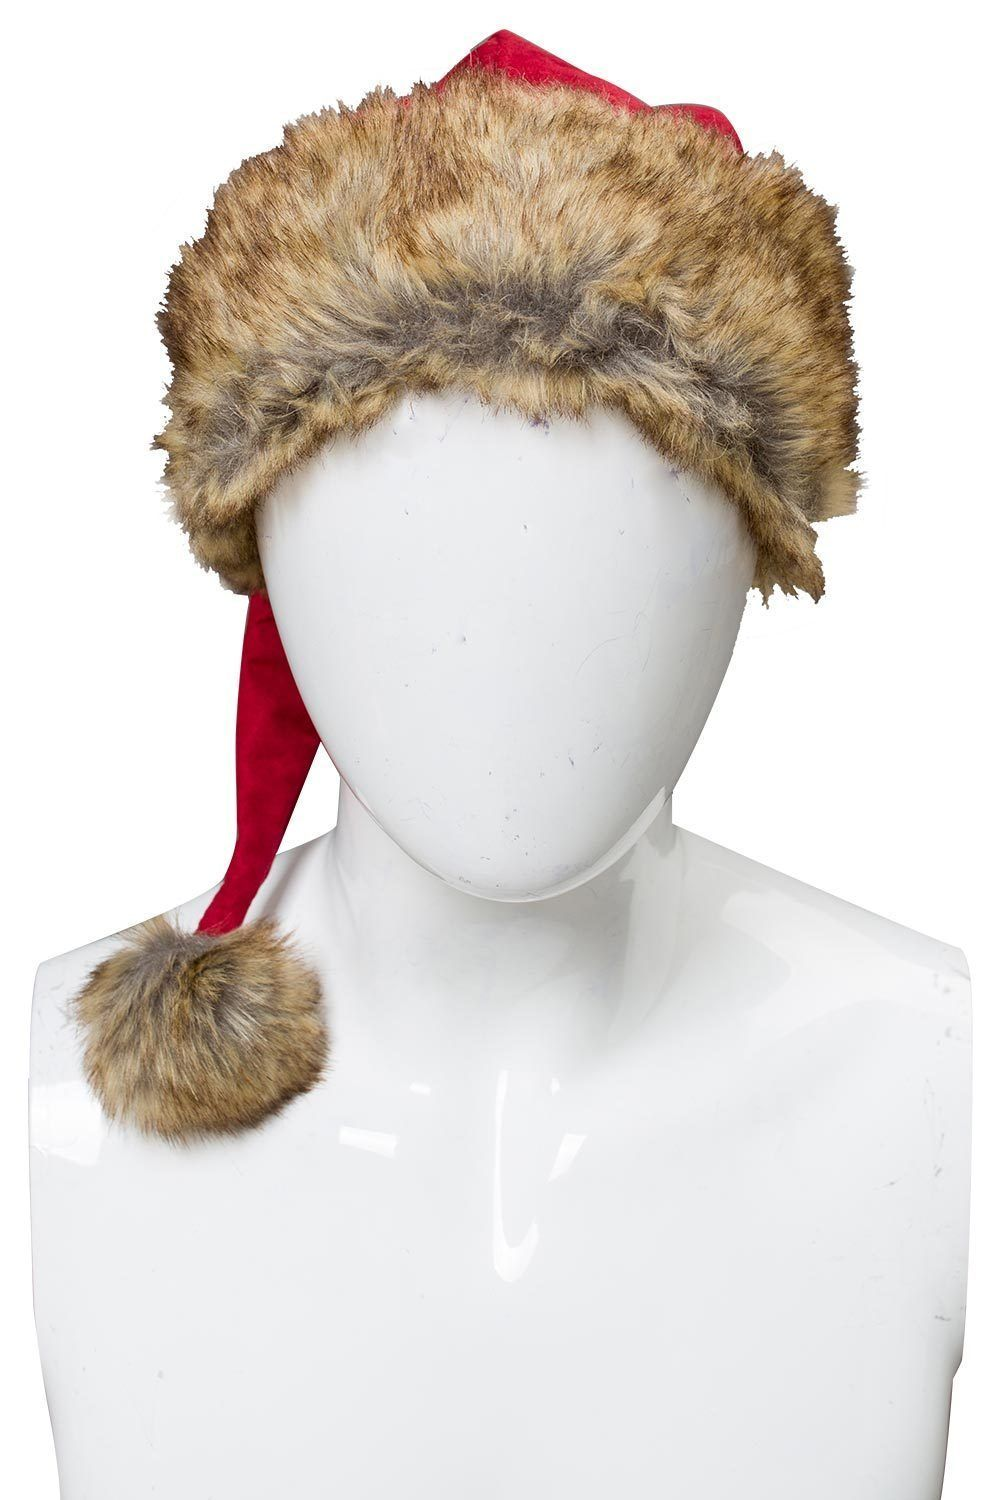 2018 Movie The Christmas Chronicles Santa Claus Outfit